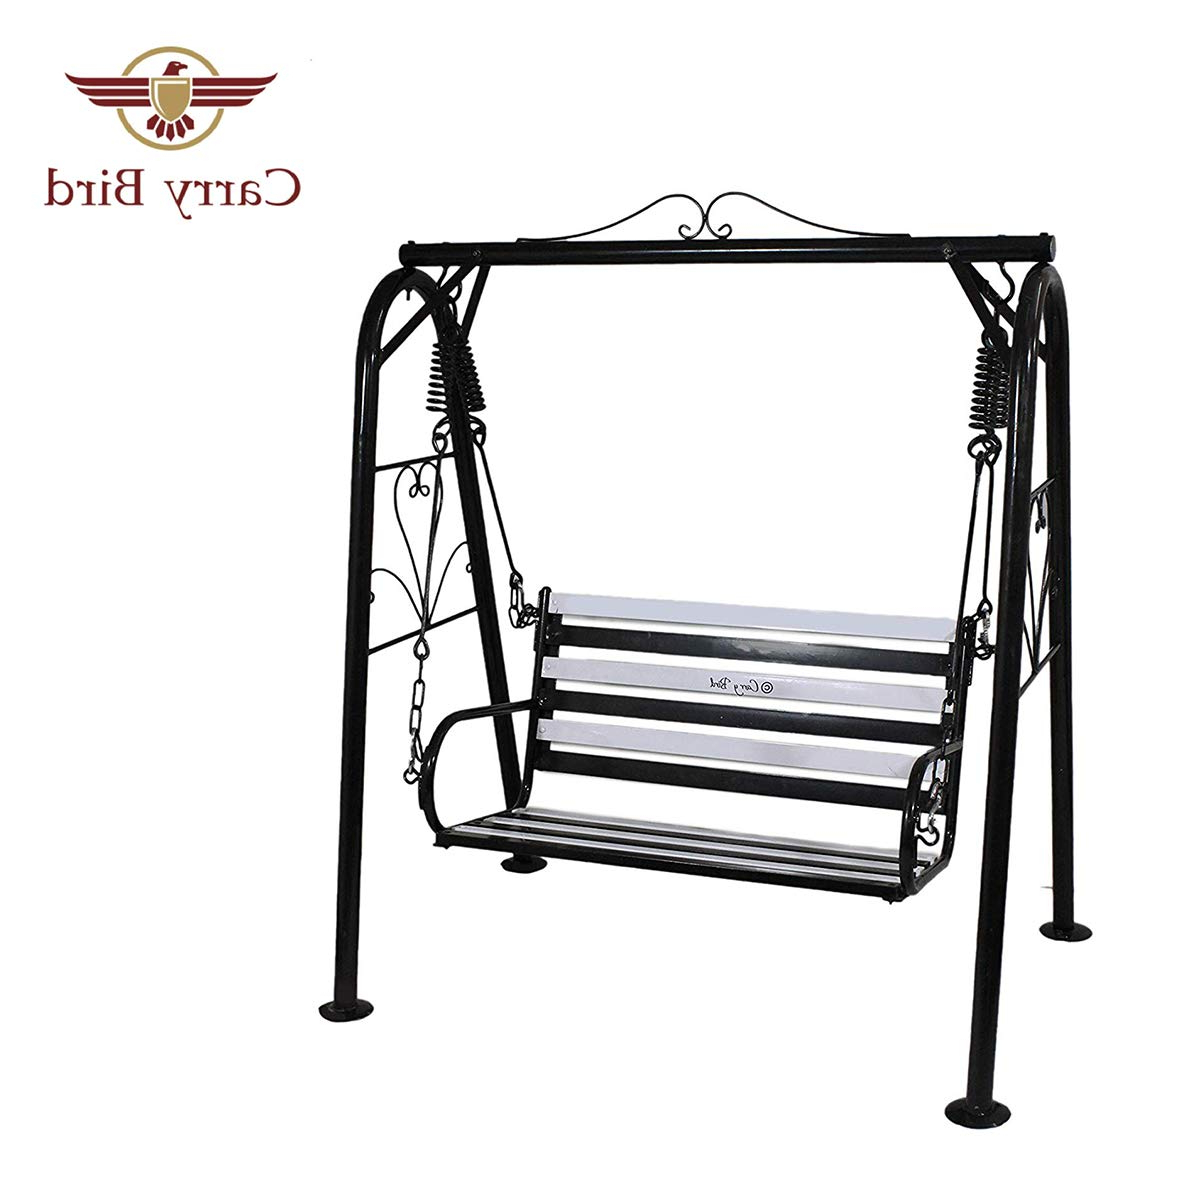 Preferred Carry Bird 2 Person Art Deco Vintage Inspired Yard Garden Lawn Hanging Patio Porch Swing Chair With Strong Weather Resistant Powder Coated Metal Iron For 2 Person Antique Black Iron Outdoor Swings (View 13 of 30)